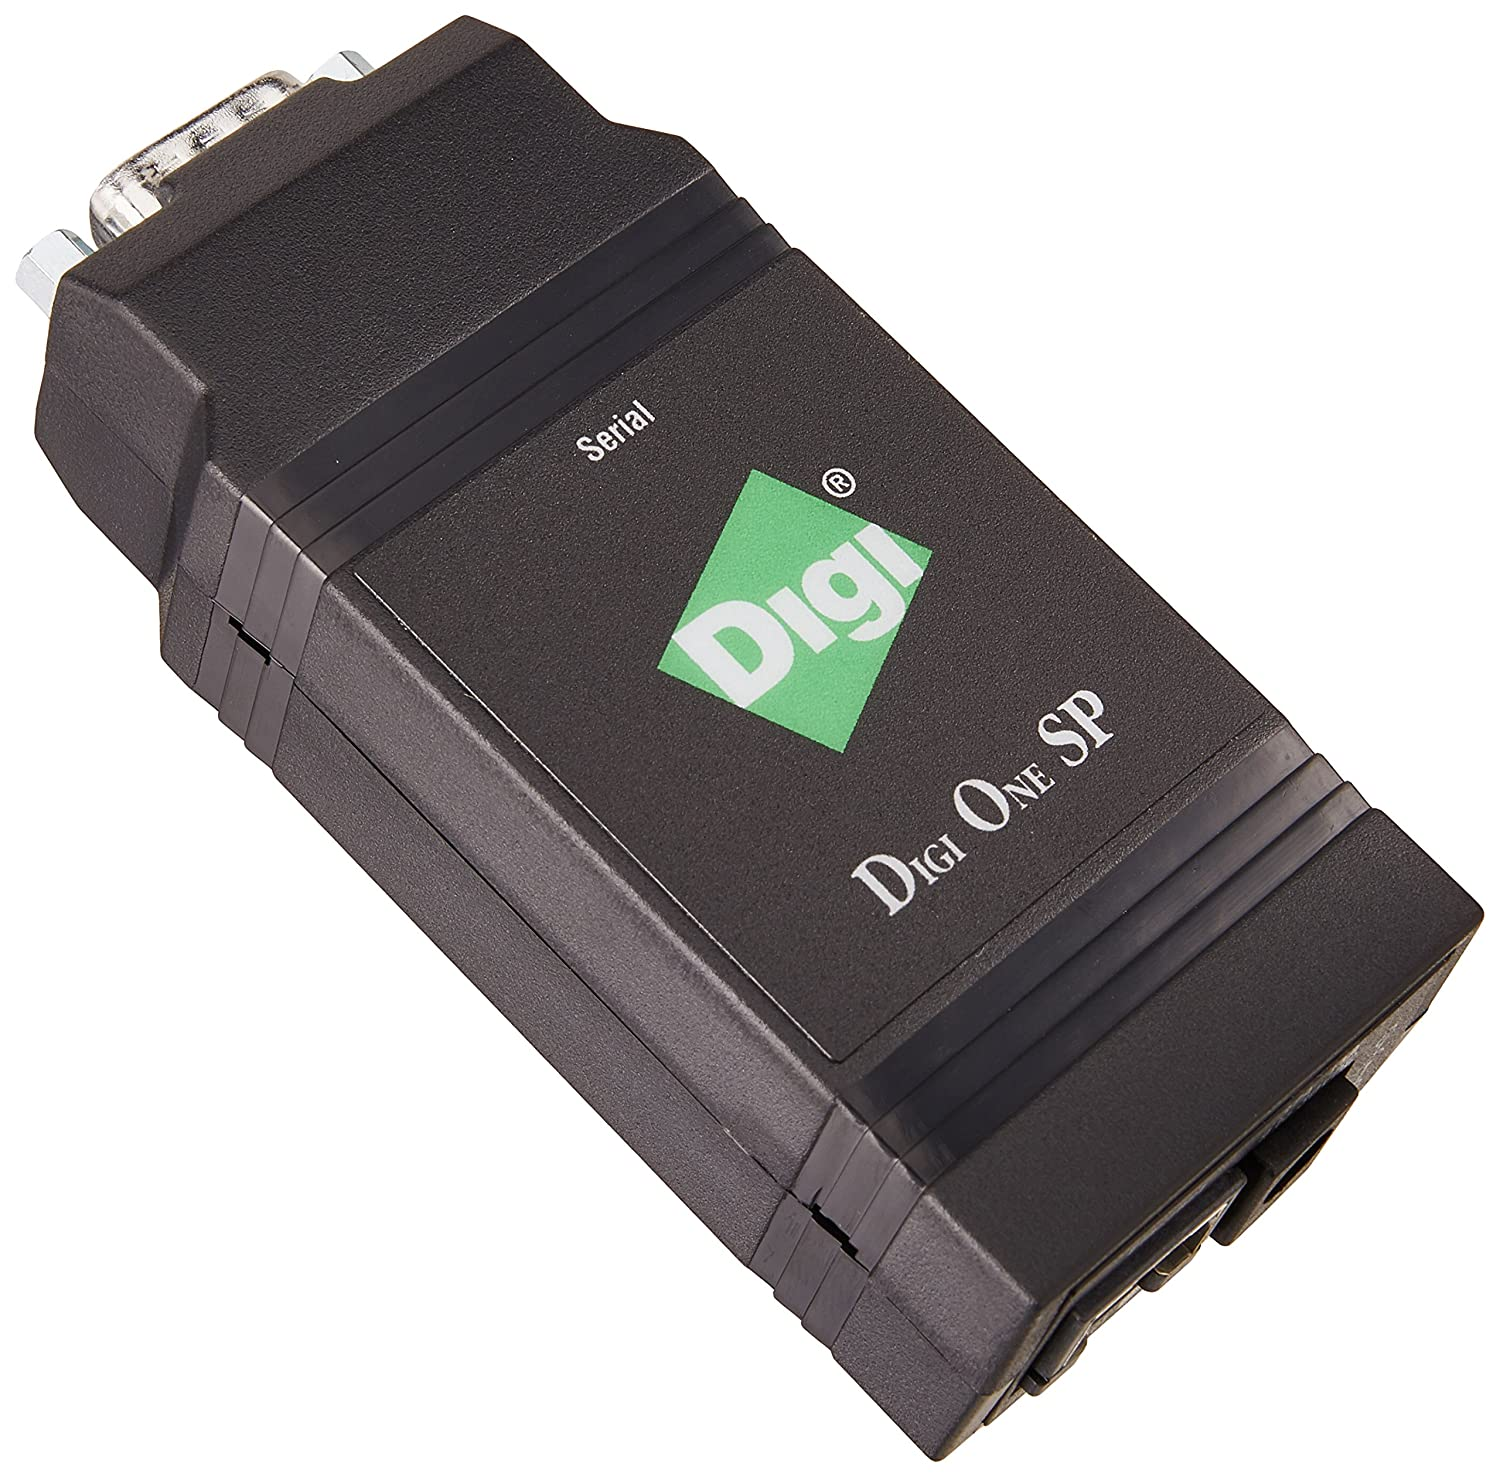 Digi International - Digi One Sp - Terminal Server - En, Fast En, Rs-232, Rs-422 70001851